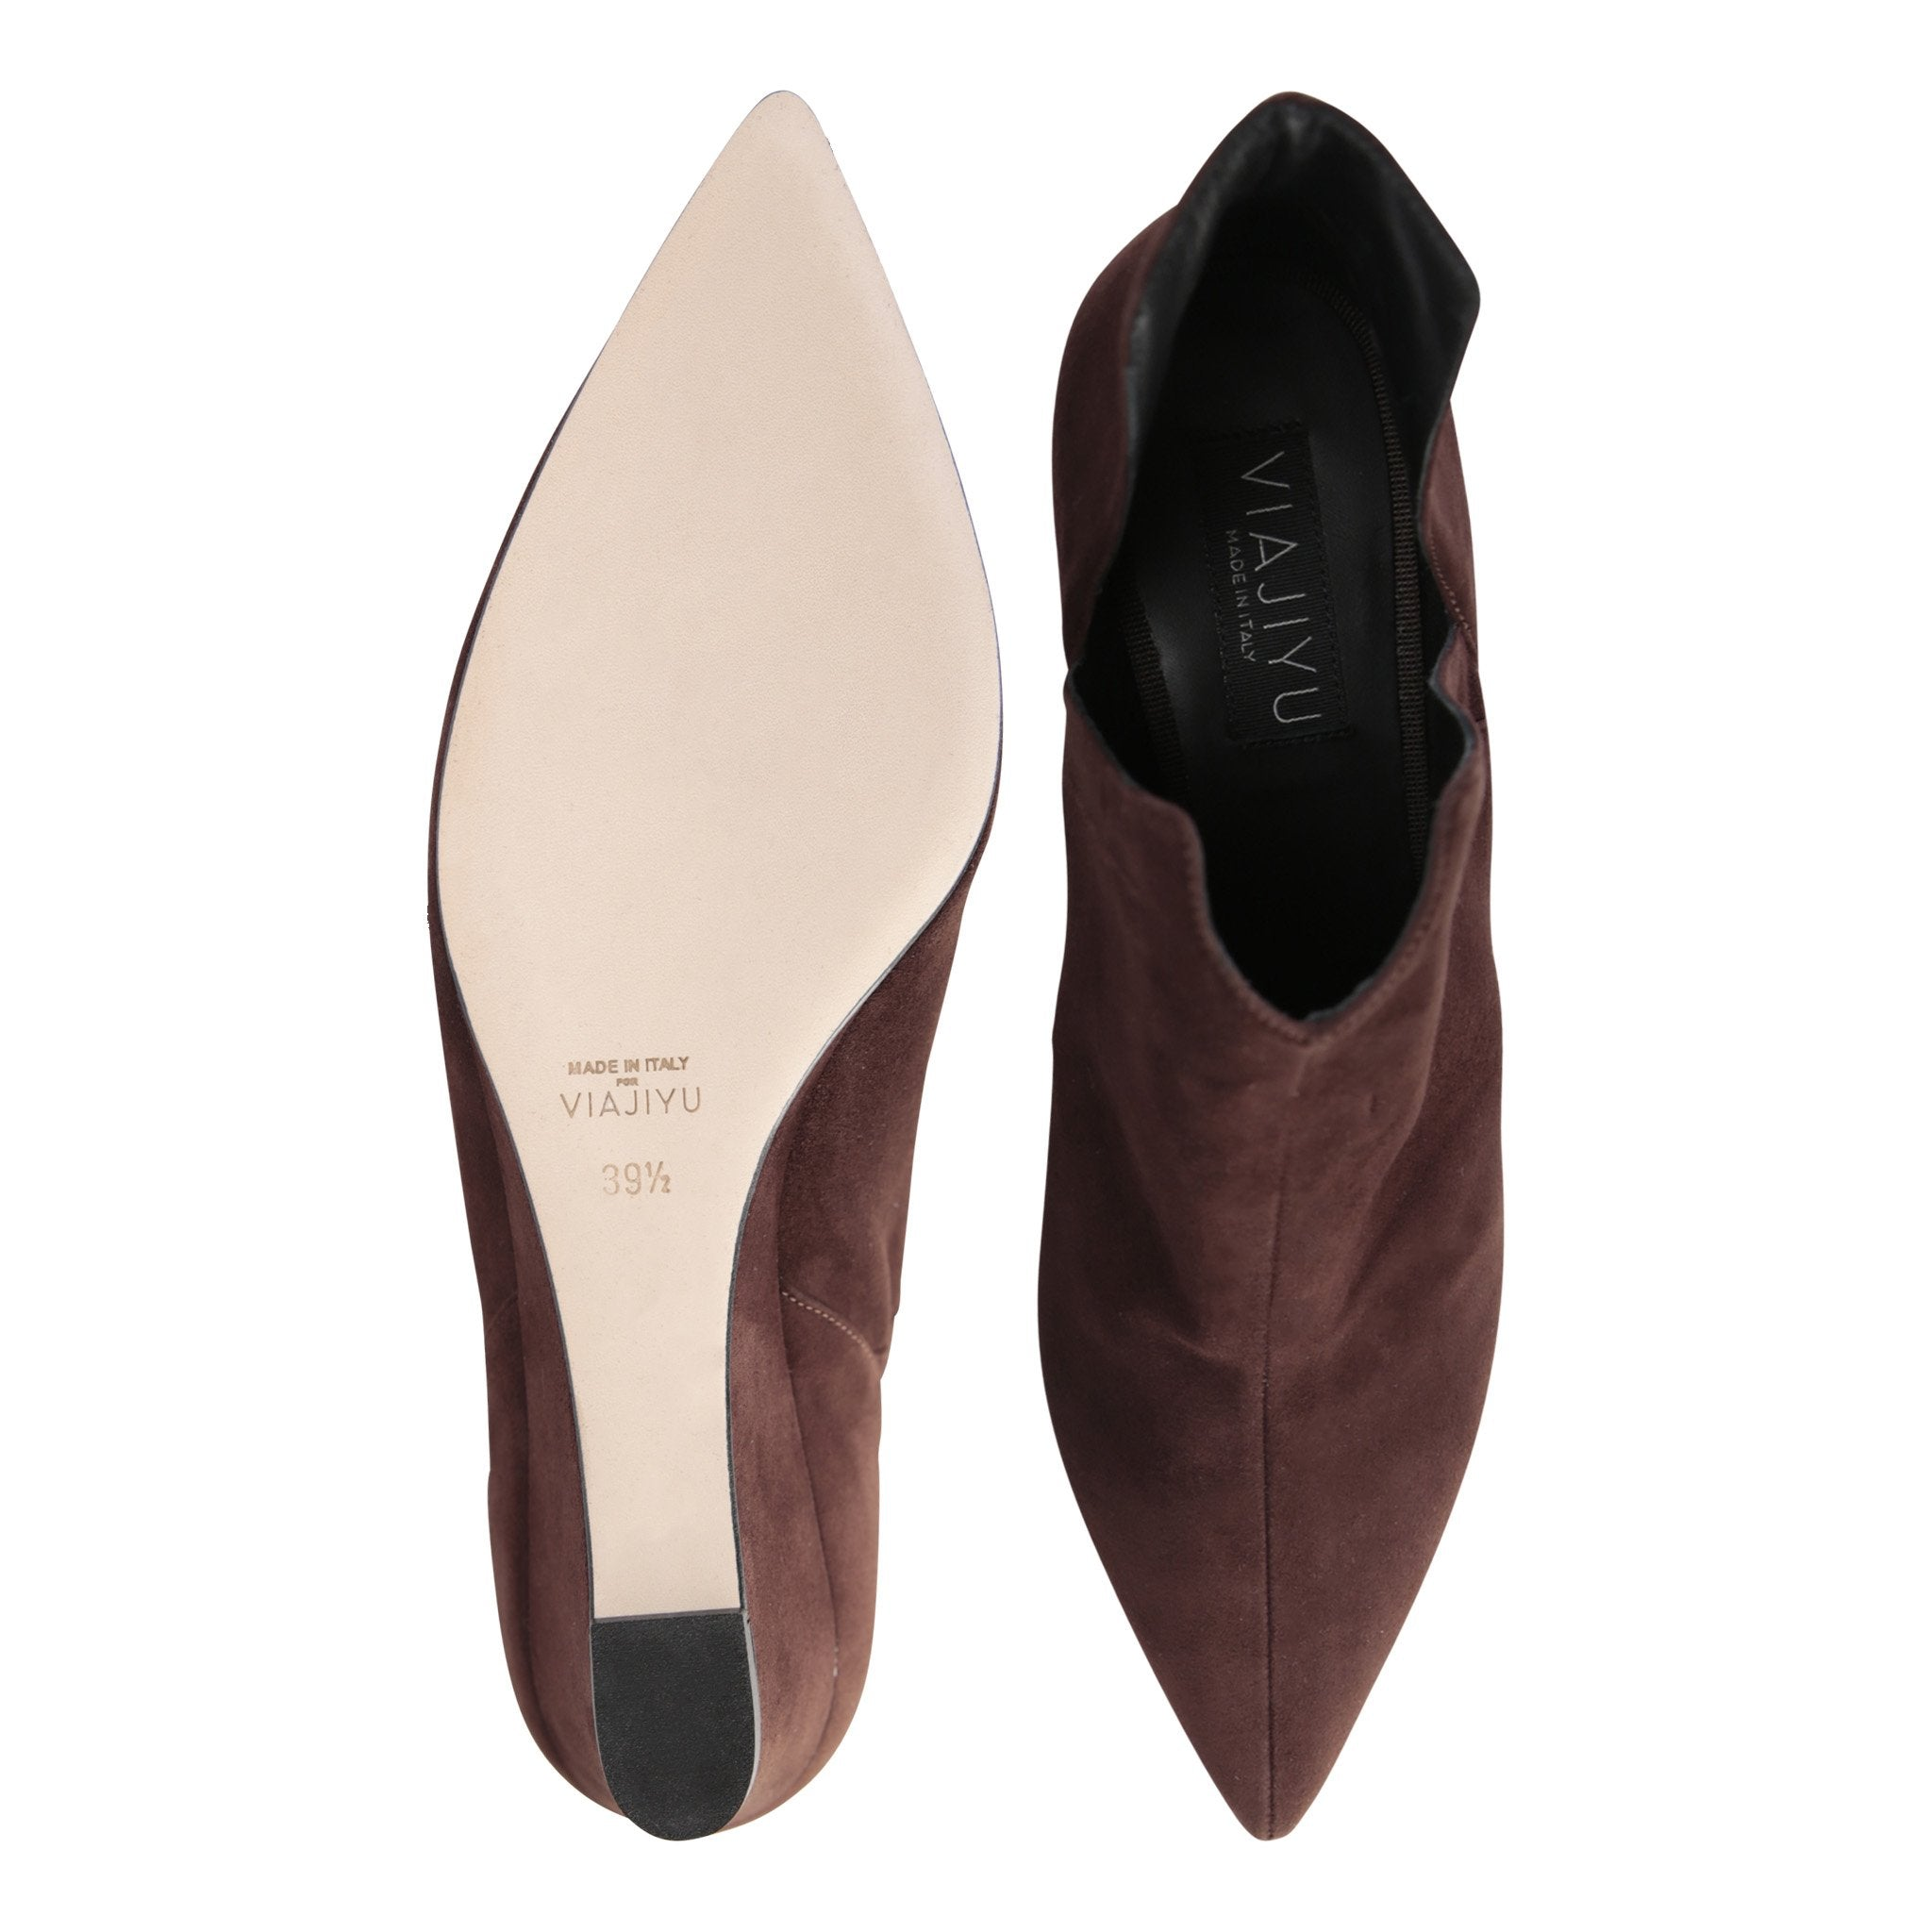 SYRENE - Velukid Espresso, VIAJIYU - Women's Hand Made Sustainable Luxury Shoes. Made in Italy. Made to Order.